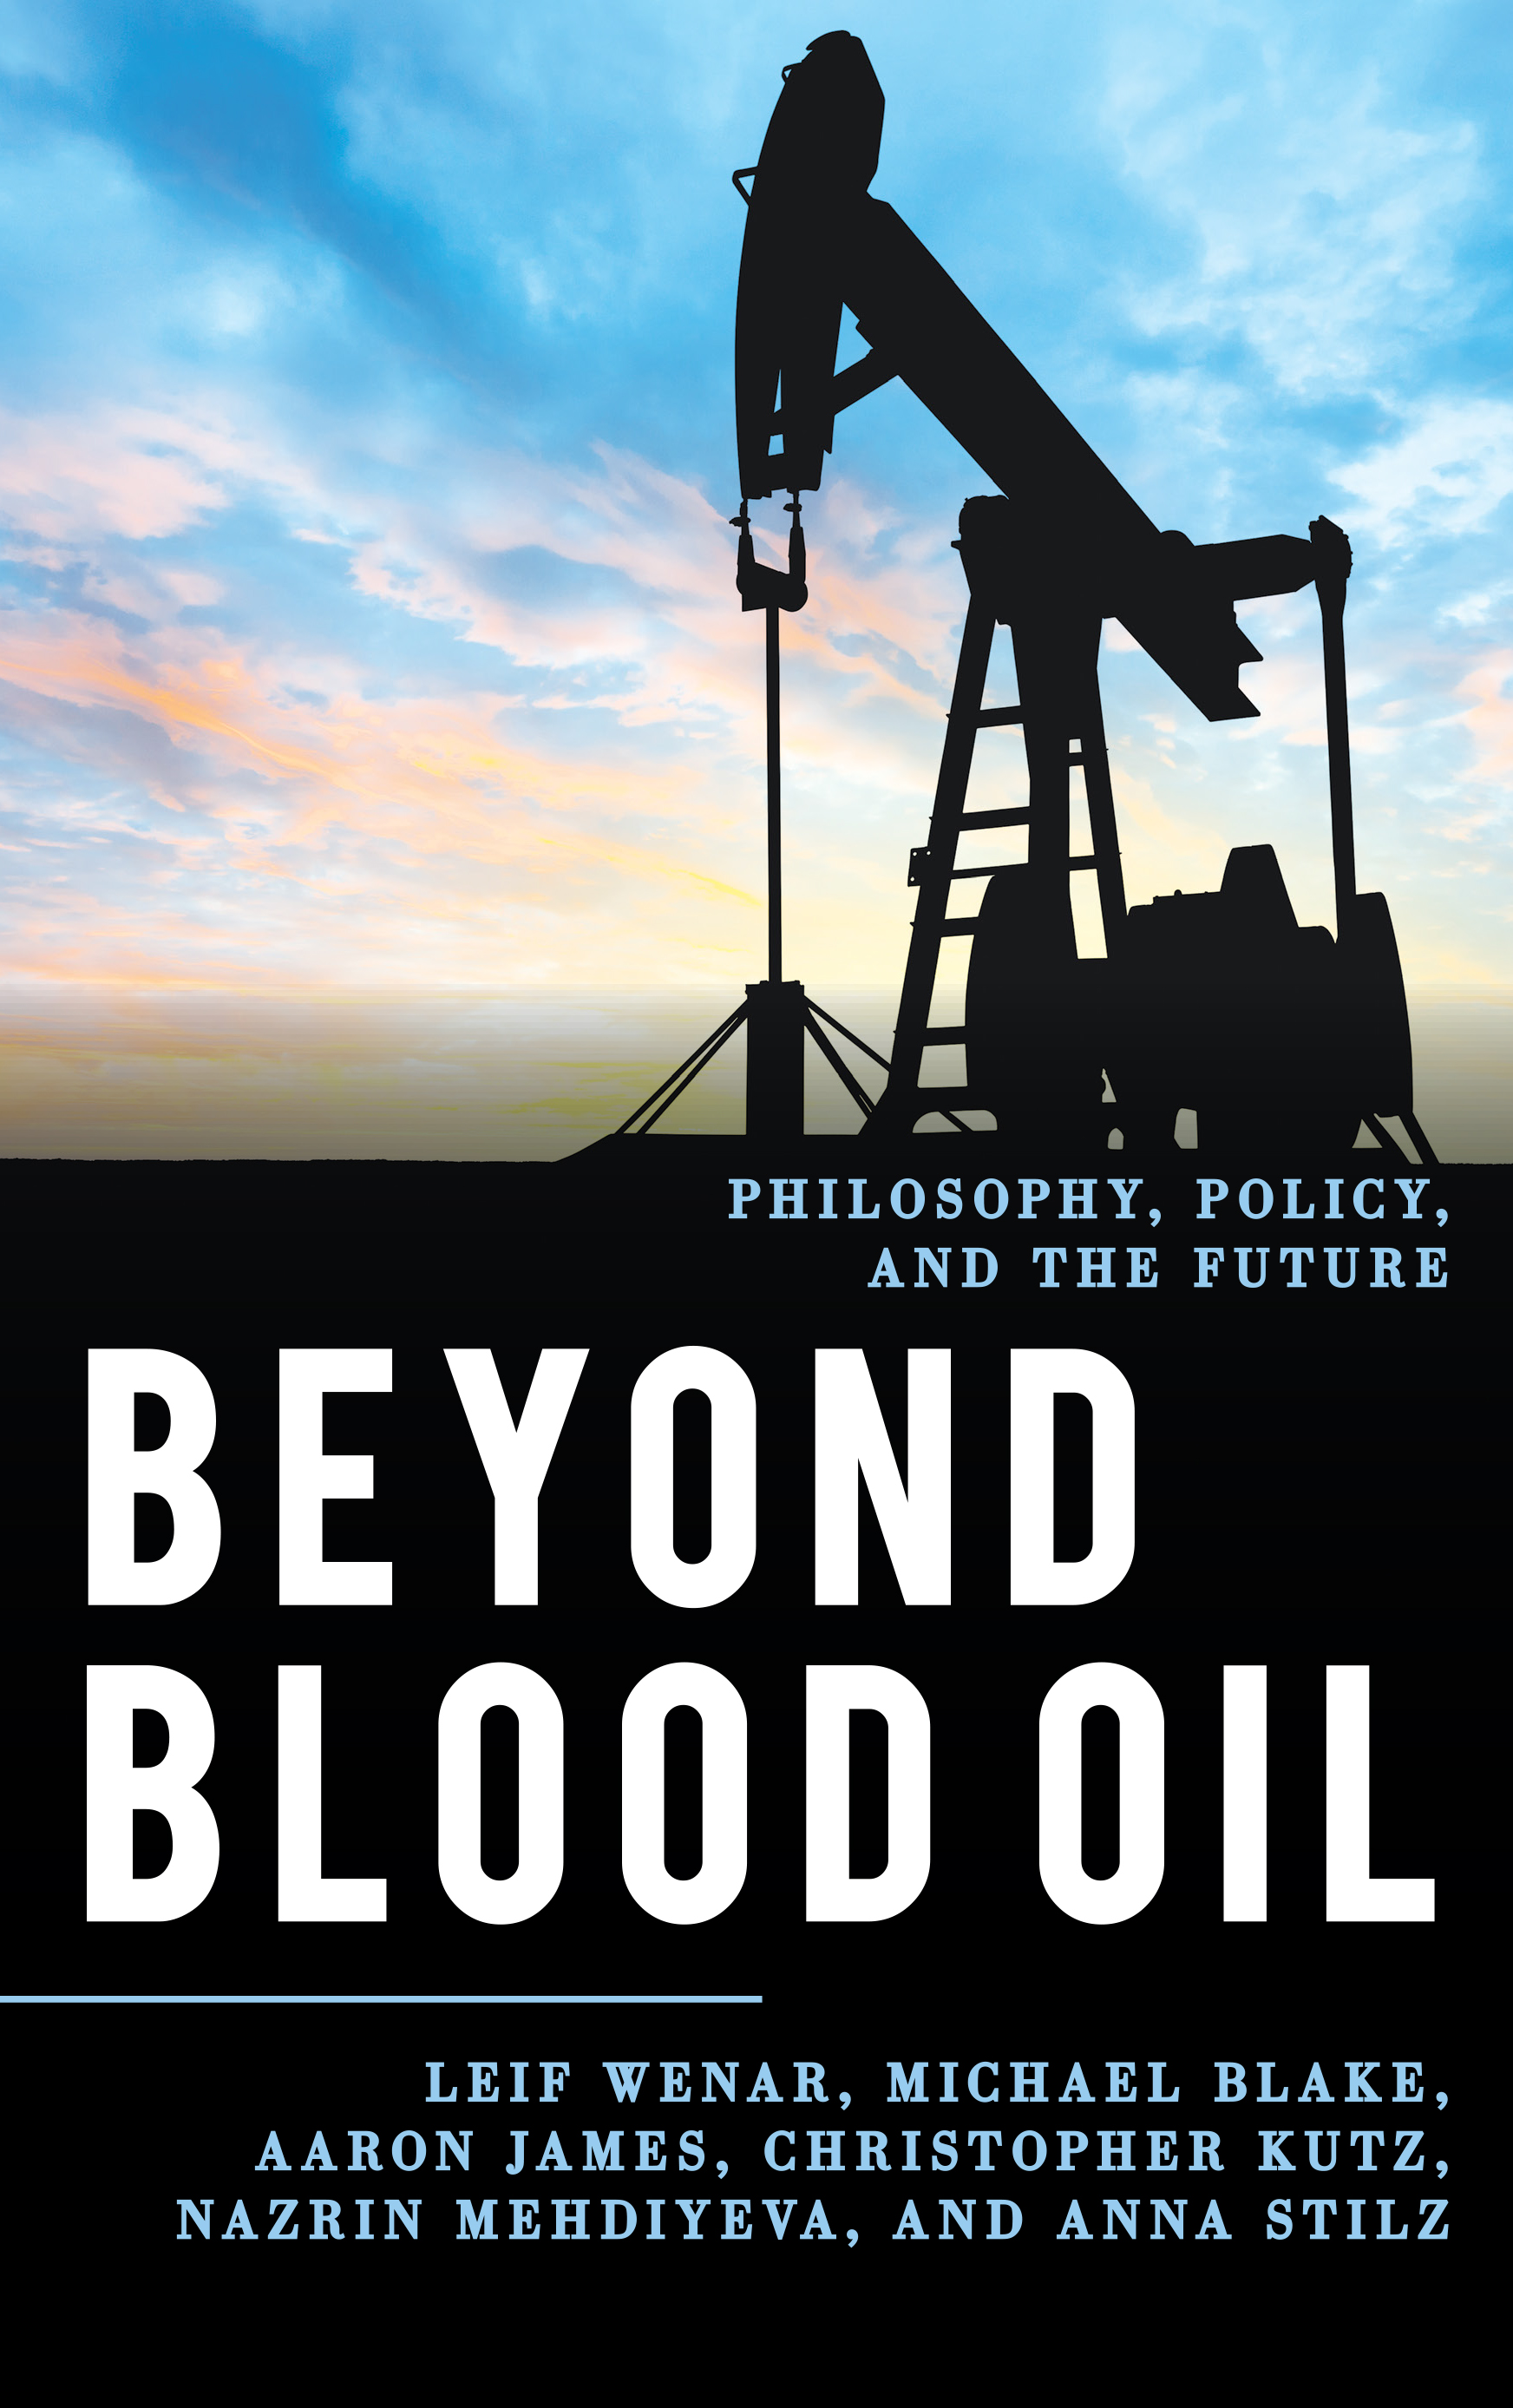 - Wenar et. al., Beyond Blood Oil (Rowman & Littlefield)In Beyond Blood Oil, Leif Wenar summarizes and extends his views in Blood Oil, setting the stage for five essays from first-class critics from the fields of political theory, philosophy, and energy policy.Wenar replies vigorously and frankly to the critics, making the volume the scene of a highly energetic debate that will benefit all scholars, students, and citizens interested in global justice, international security, oil politics, fair trade, climate change, and progressive reforms.Leif Wenar holds the Chair of Philosophy and Law at King's College London.Michael Blake is Professor of Philosophy, Public Policy, and Governance at the University of Washington.Aaron James is Professor of Philosophy at the University of California, Irvine.Christopher Kutz is C. William Maxeiner Distinguished Professor of Law at the University of California, Berkeley.Nazrin Mehdiyeva is an independent scholar, consultant, and specialist in energy security and geopolitics.Anna Stilz is Laurance S. Rockefeller Professor of Politics and the University Center for Human Values at Princeton University.